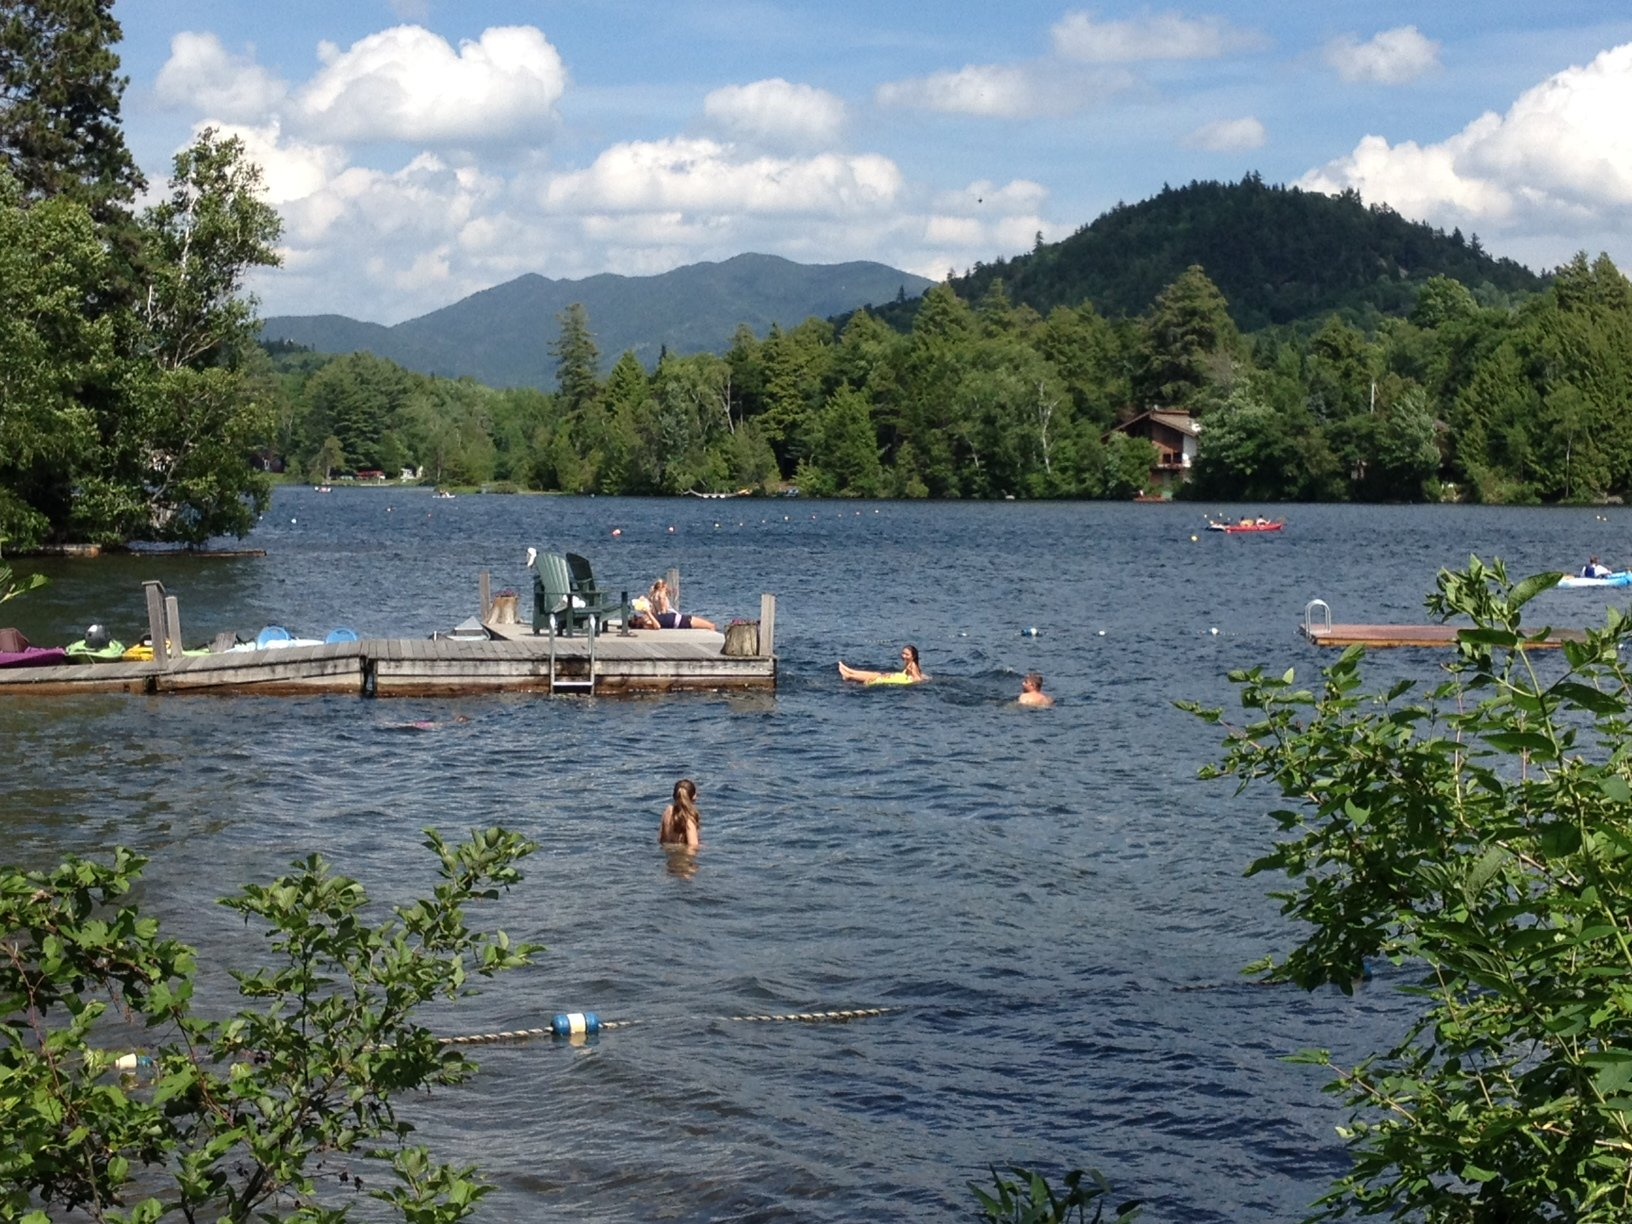 People swimming lakeside near a wooden dock.